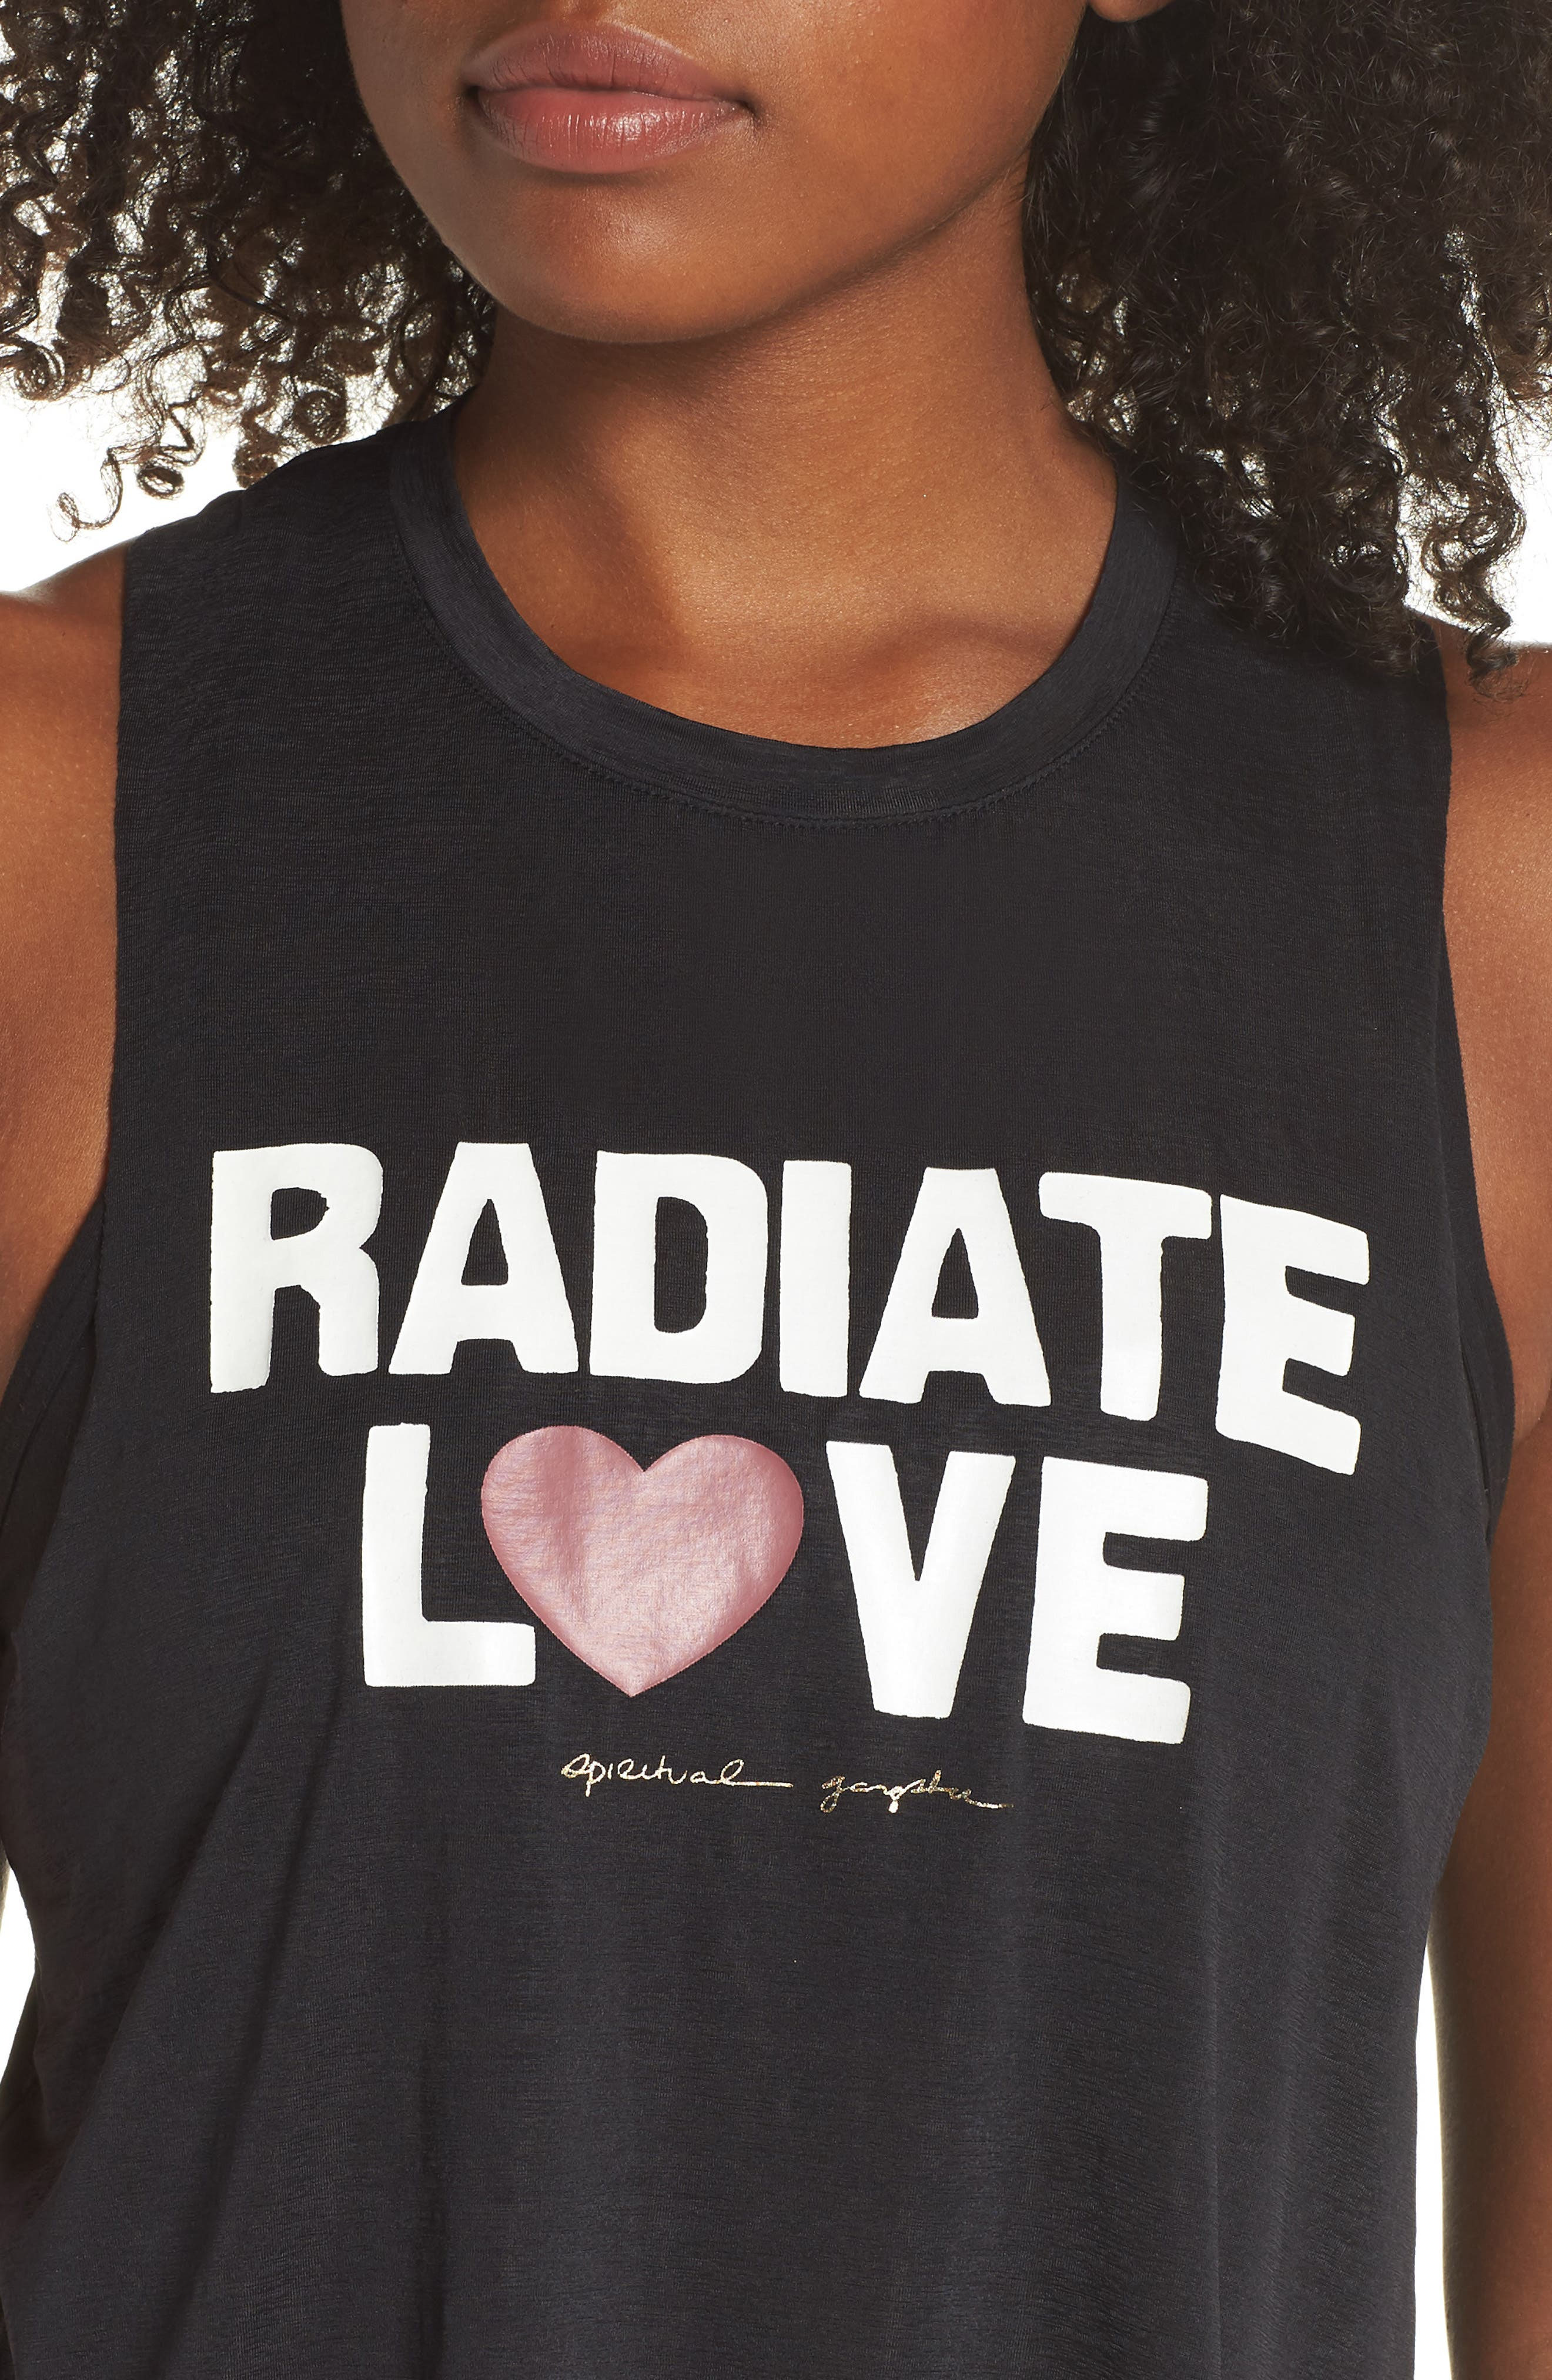 Radiate Love Crop Tank Top,                             Alternate thumbnail 4, color,                             003